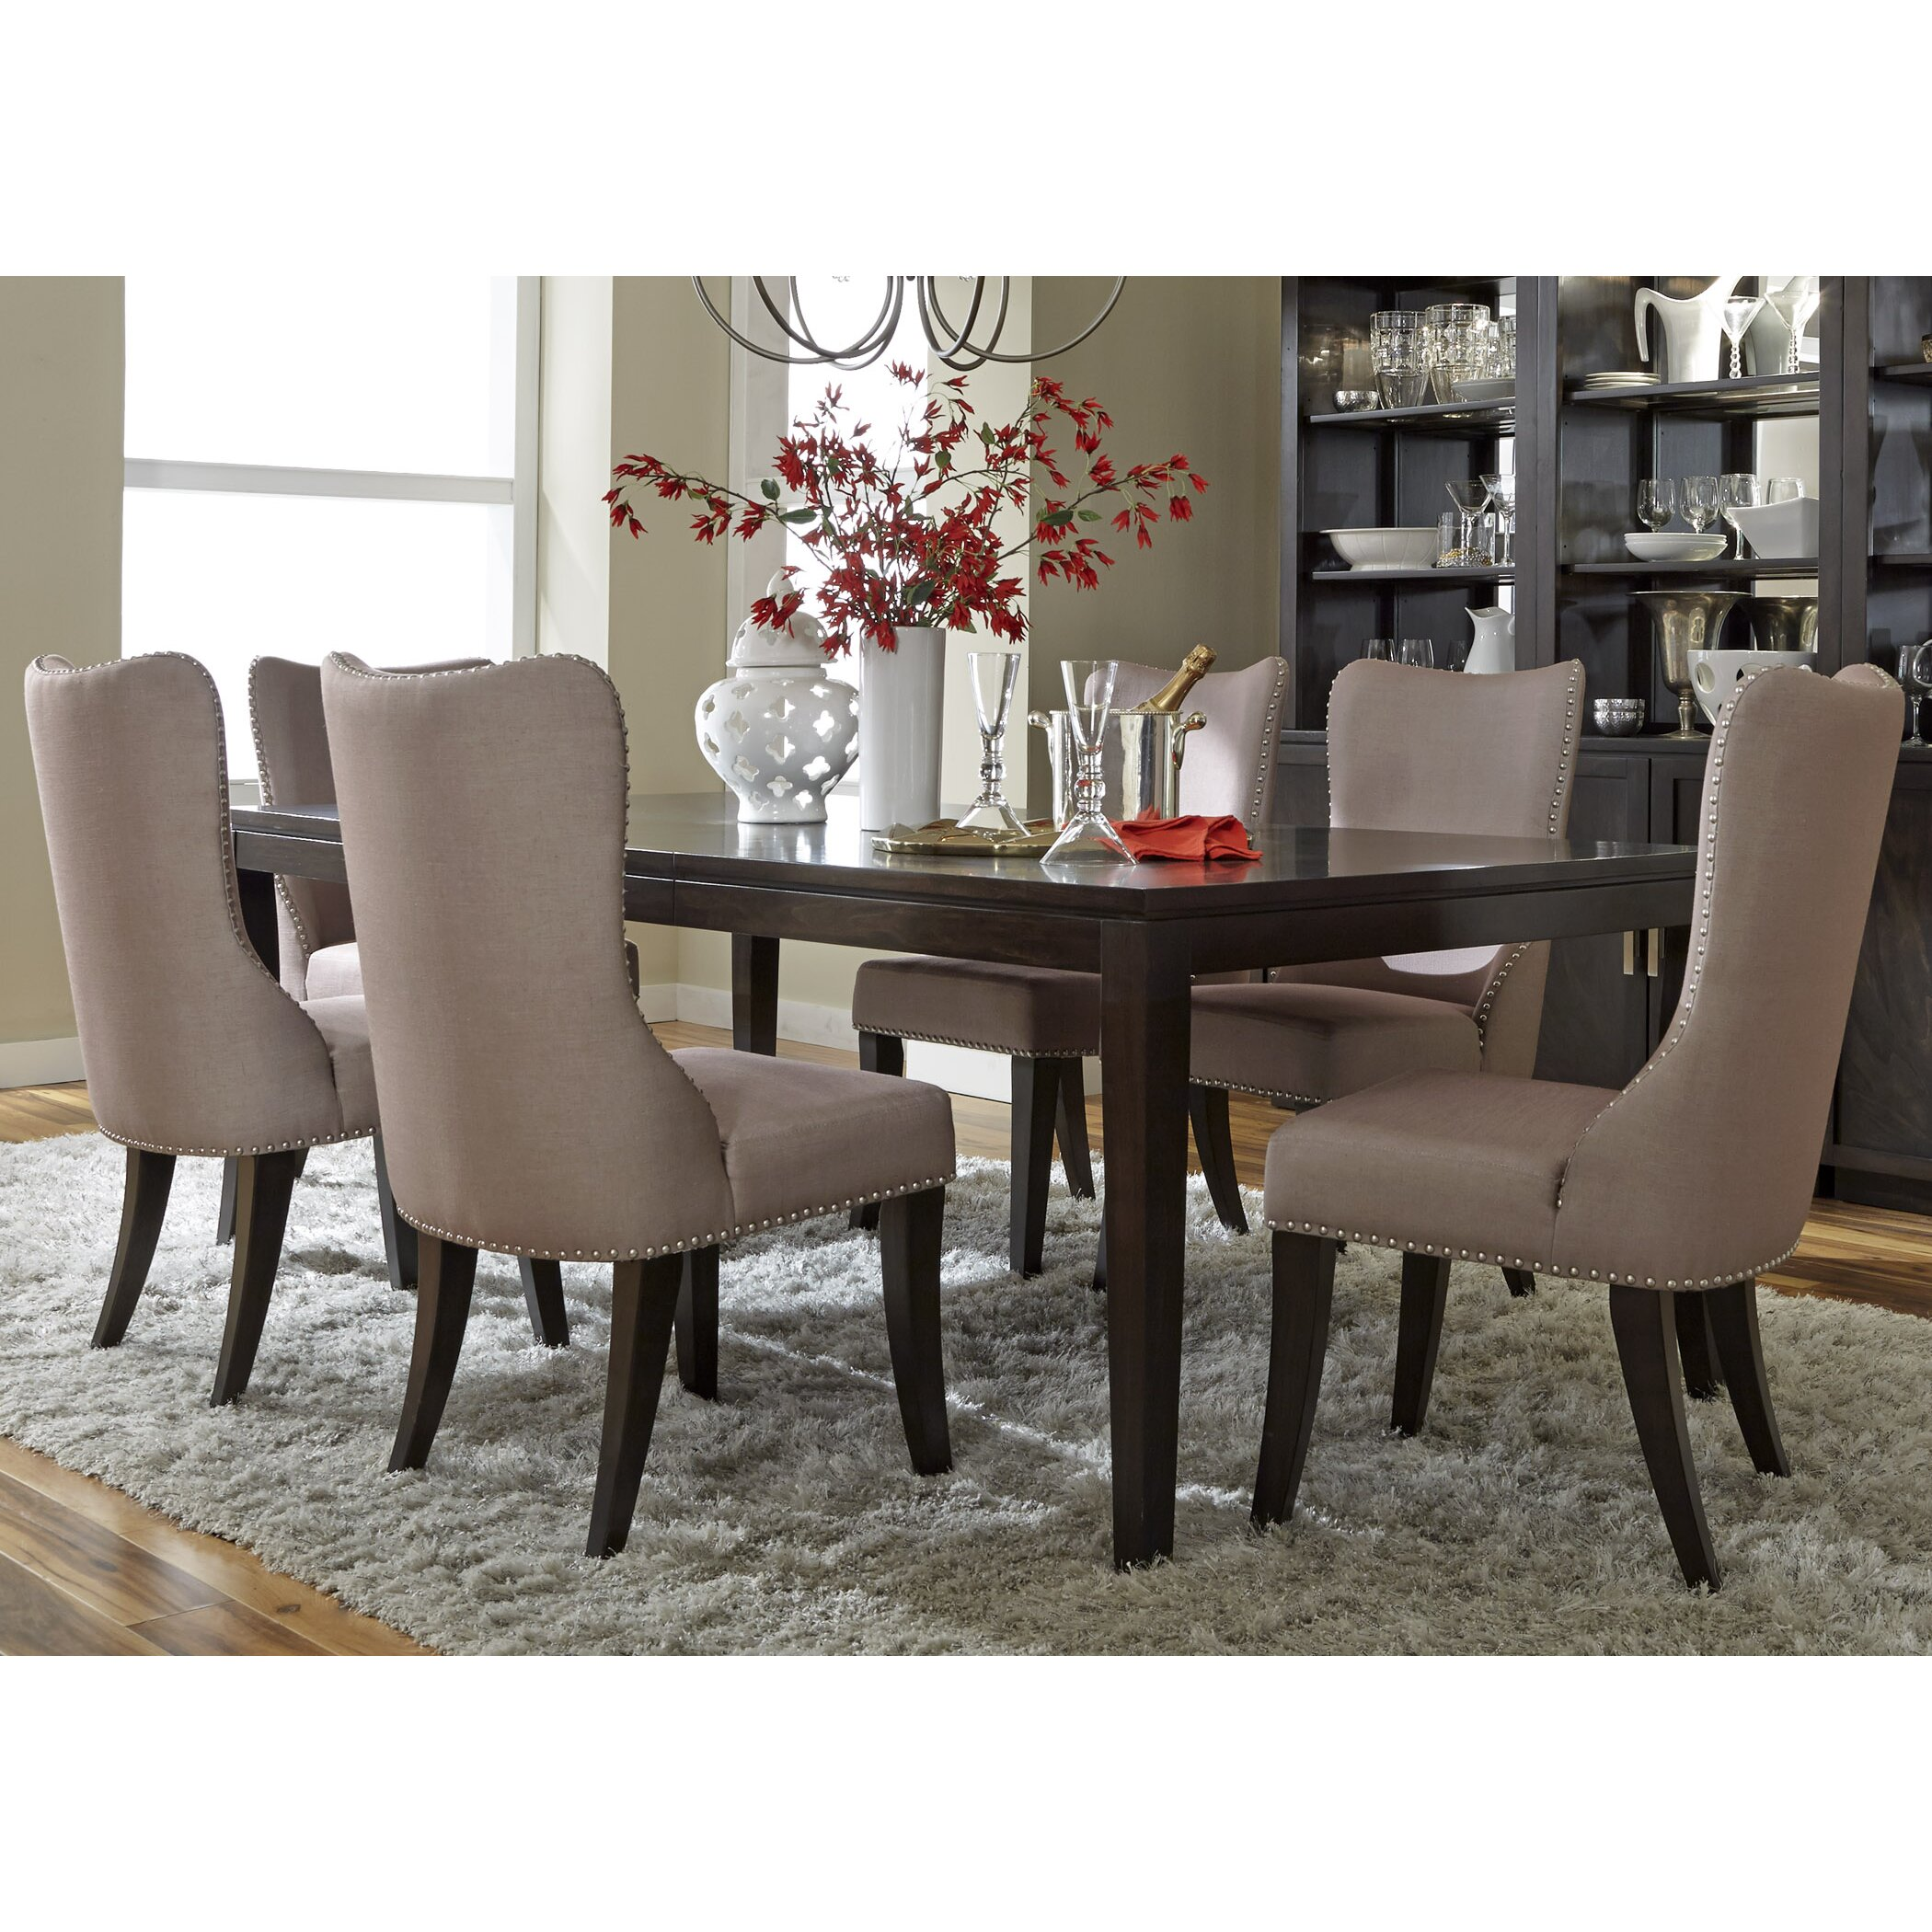 Liberty furniture 7 piece dining set reviews wayfair for 7 piece dining room set